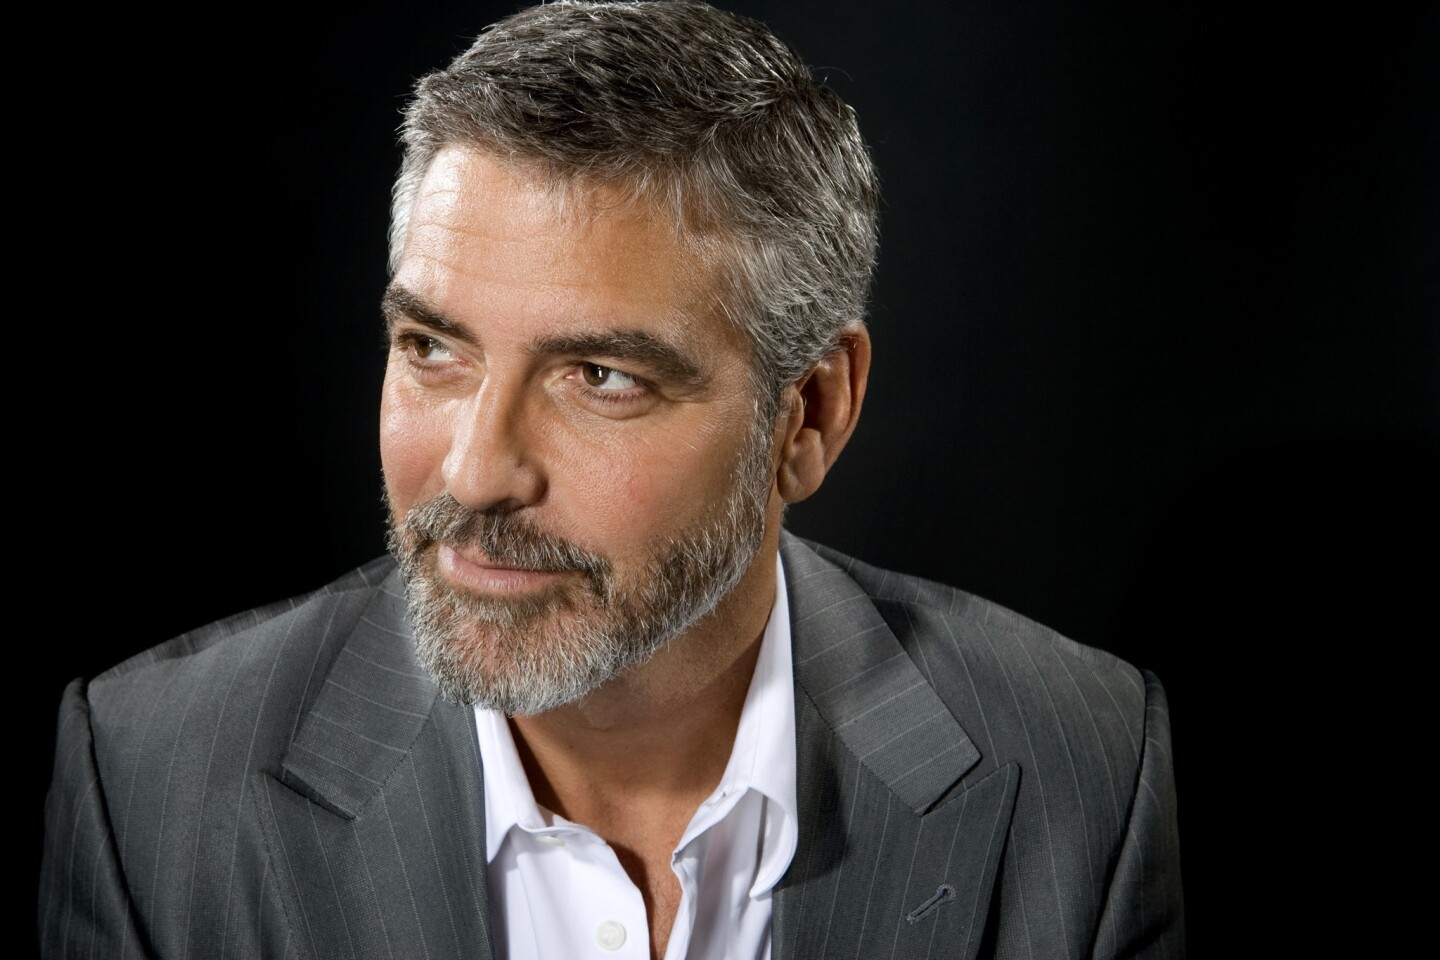 George Clooney. The name says it all: the films, the awards, the looks. We reflect on the actor's career. By Christy Khoshaba